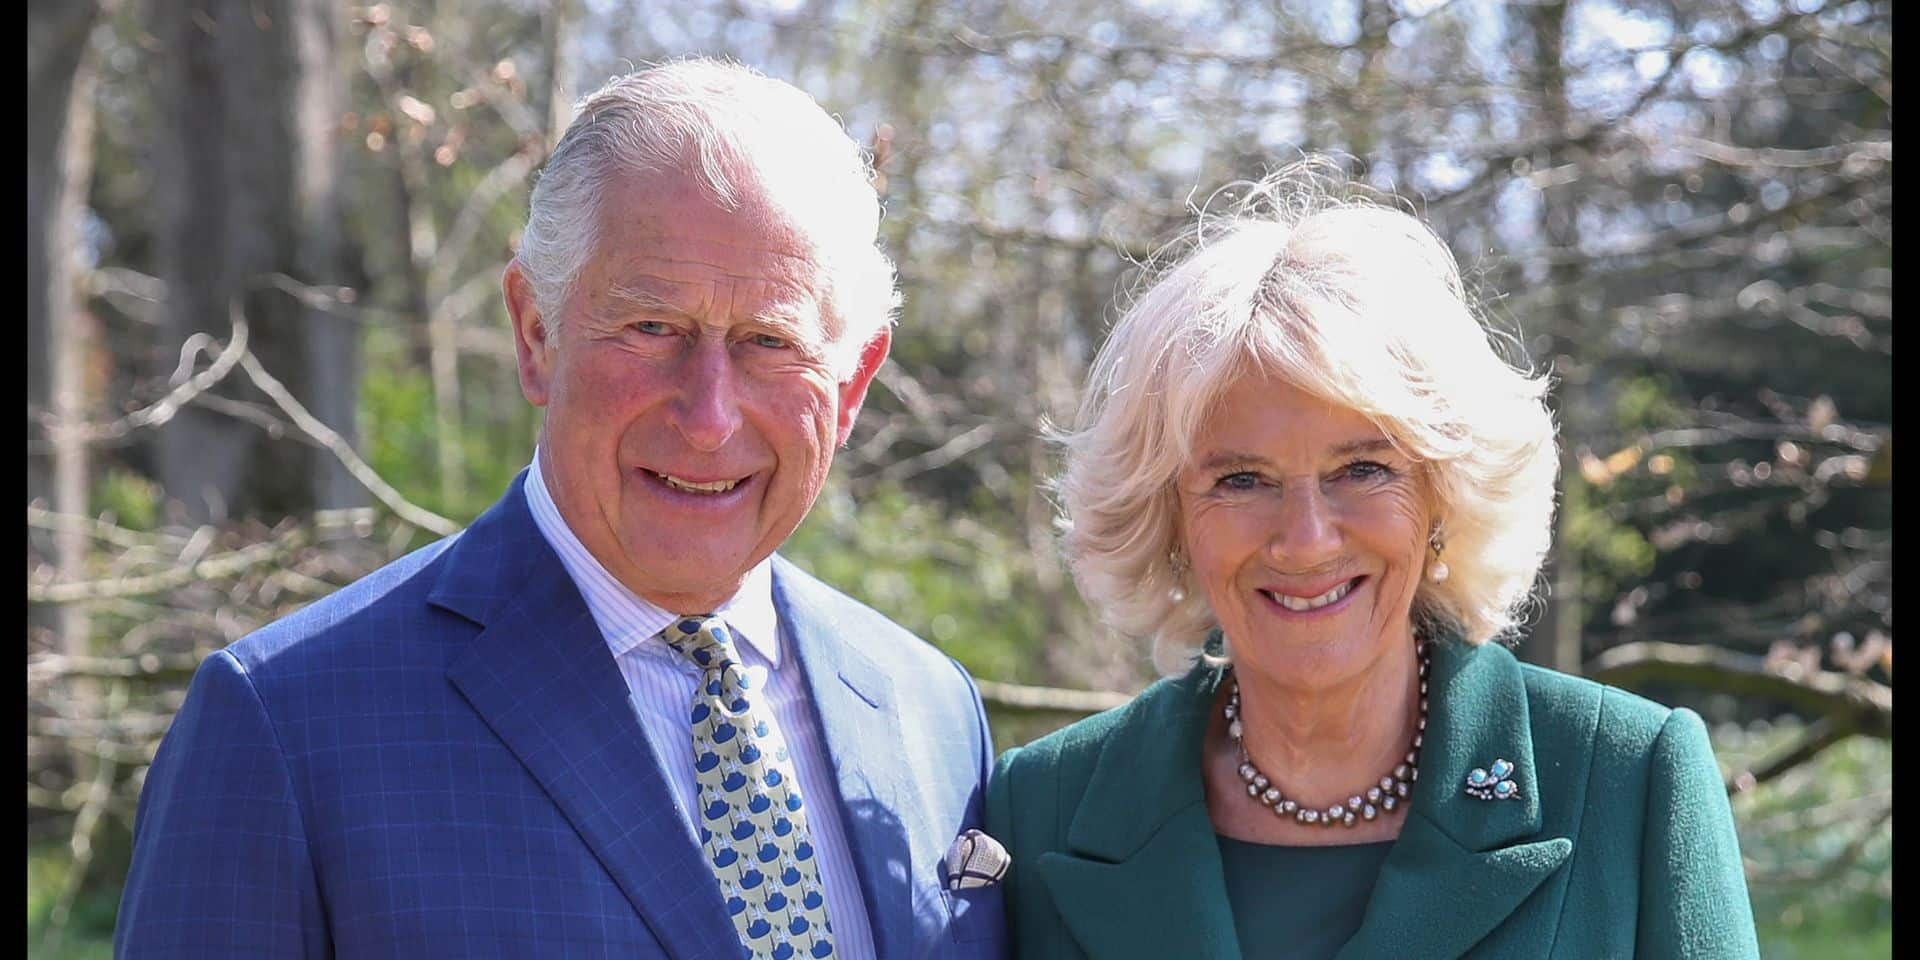 Royal visit to Hillsborough Castle and gardens